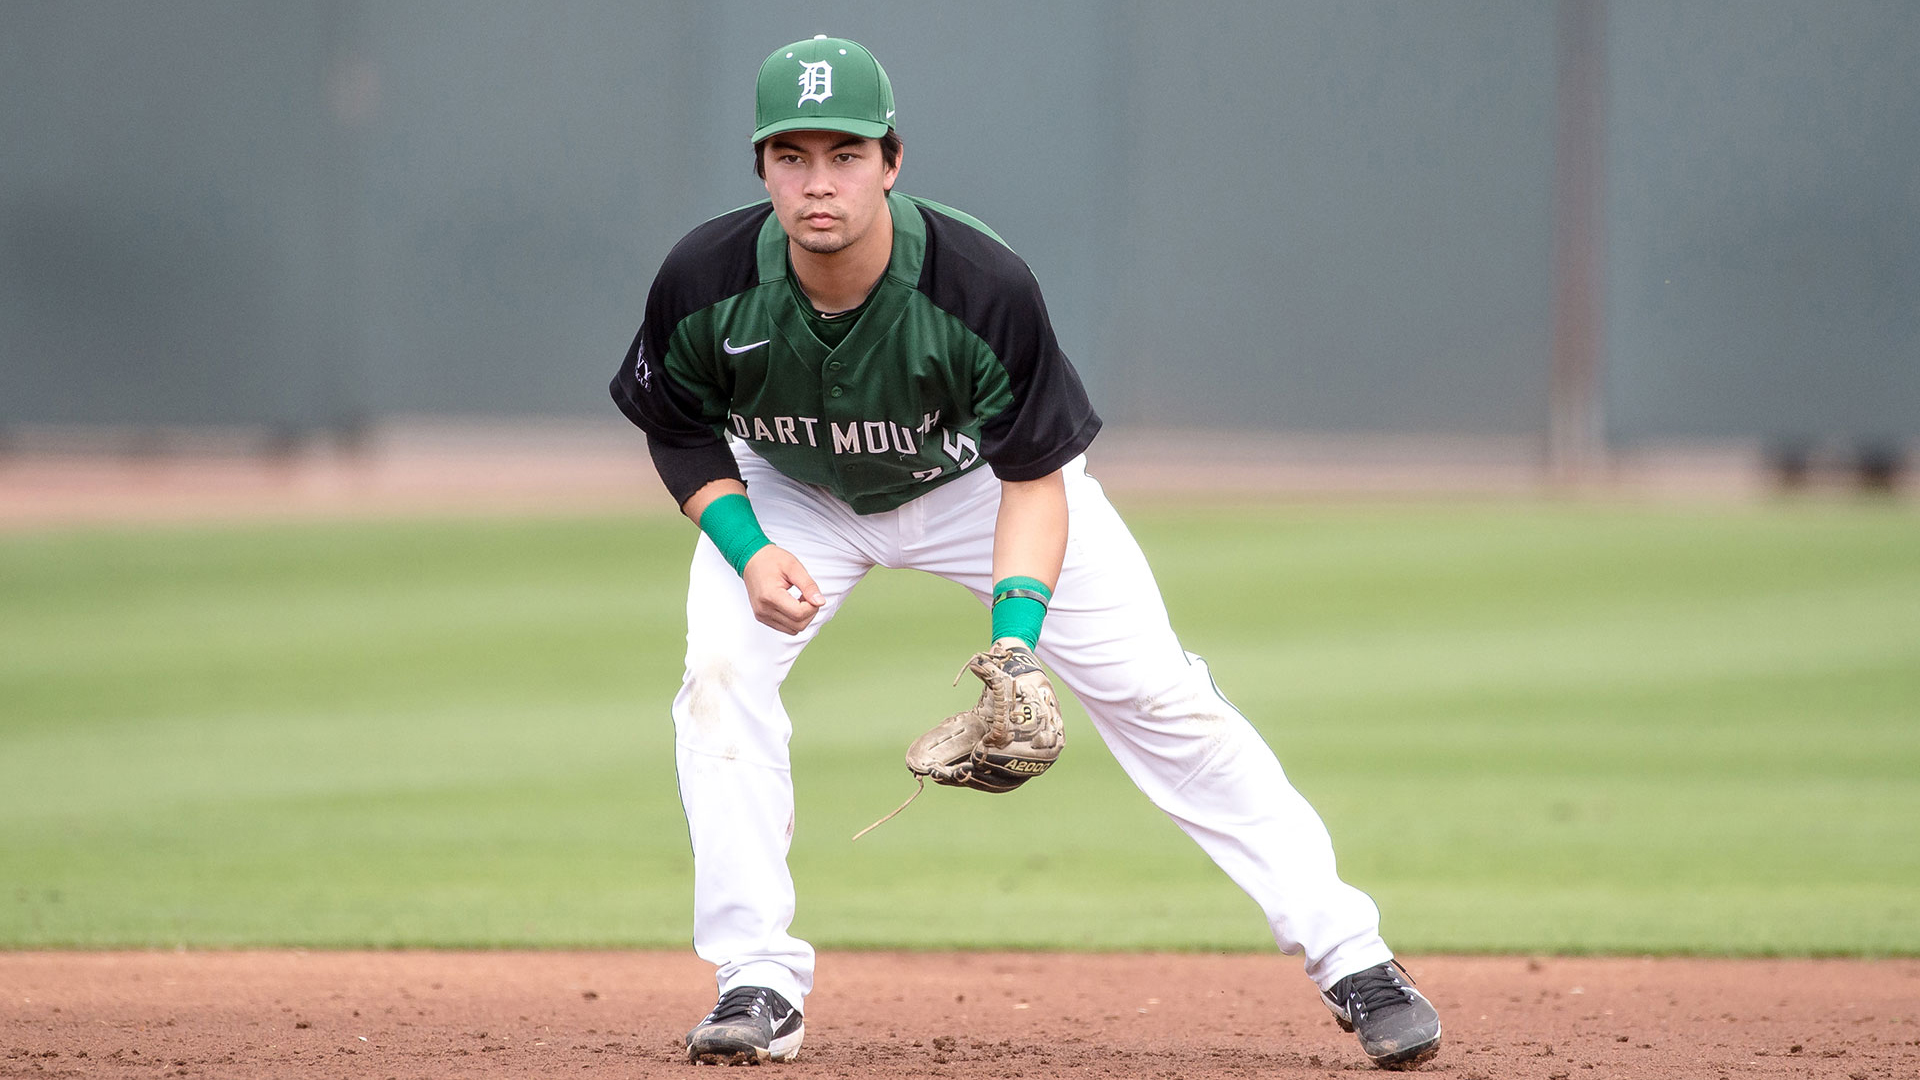 fd847ea6e86 Justin Fowler - Baseball - Dartmouth College Athletics